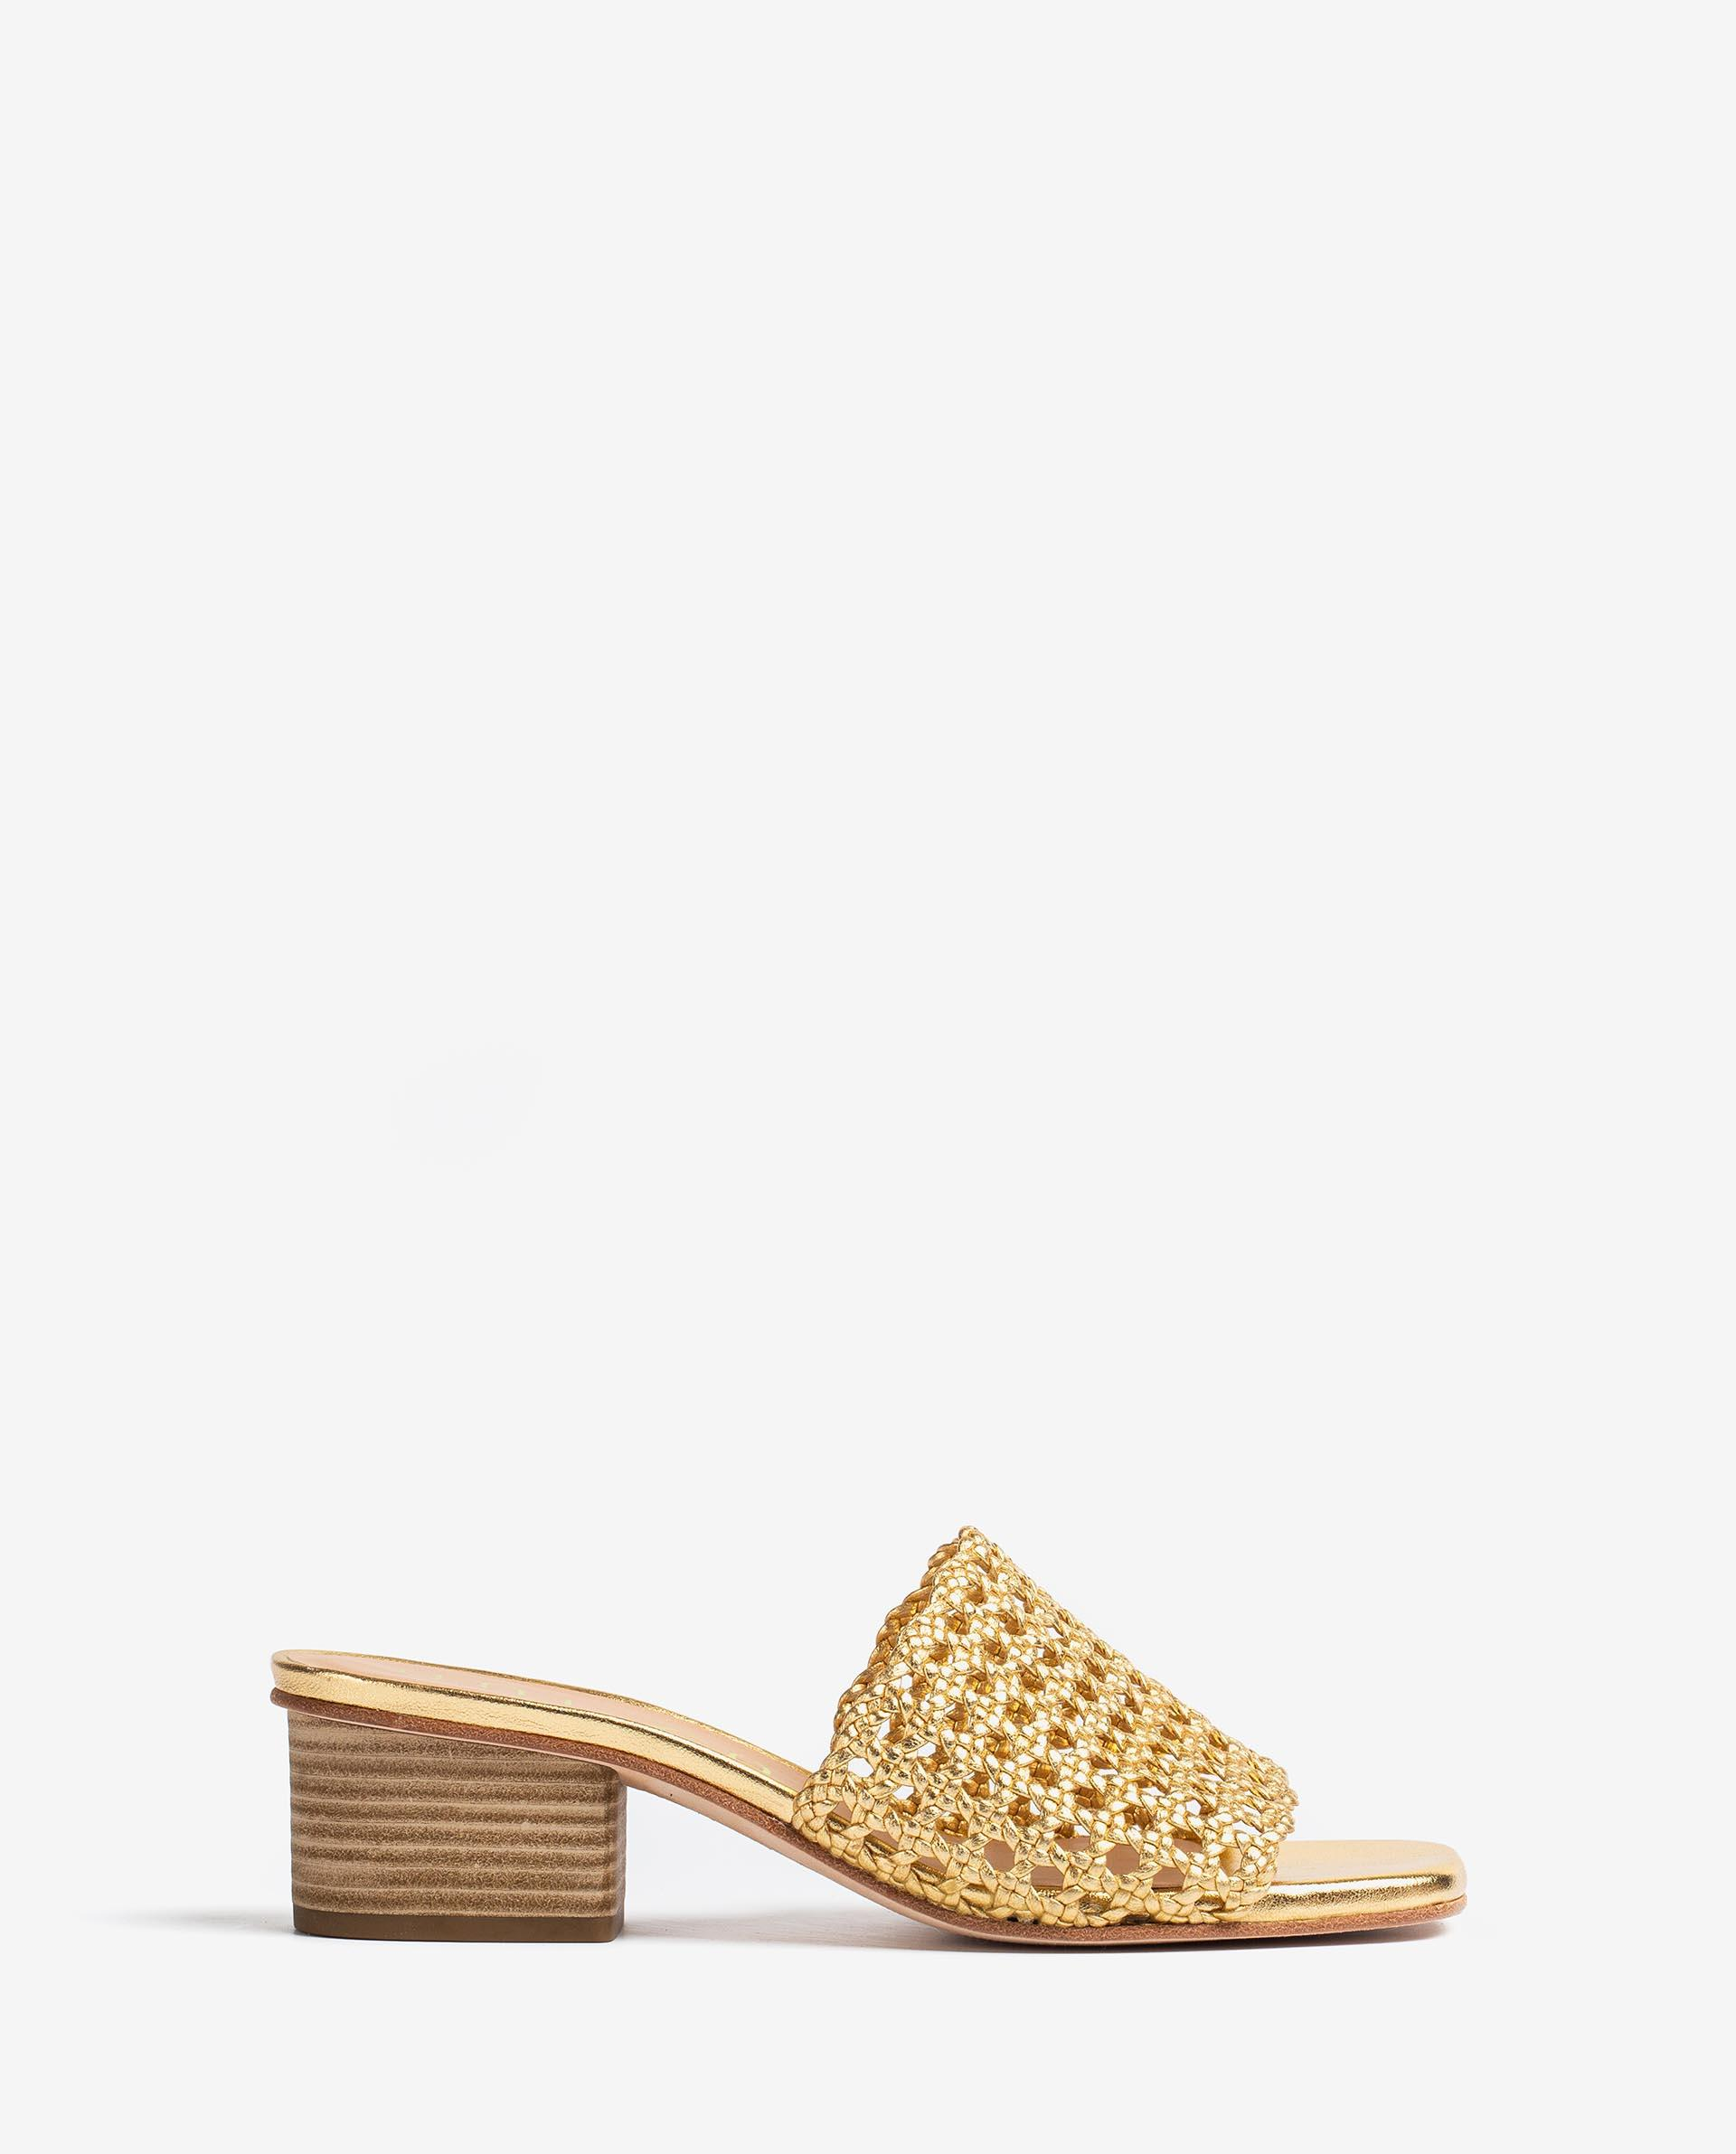 UNISA Square toe metal effect leather mules KOLY_LMT 2